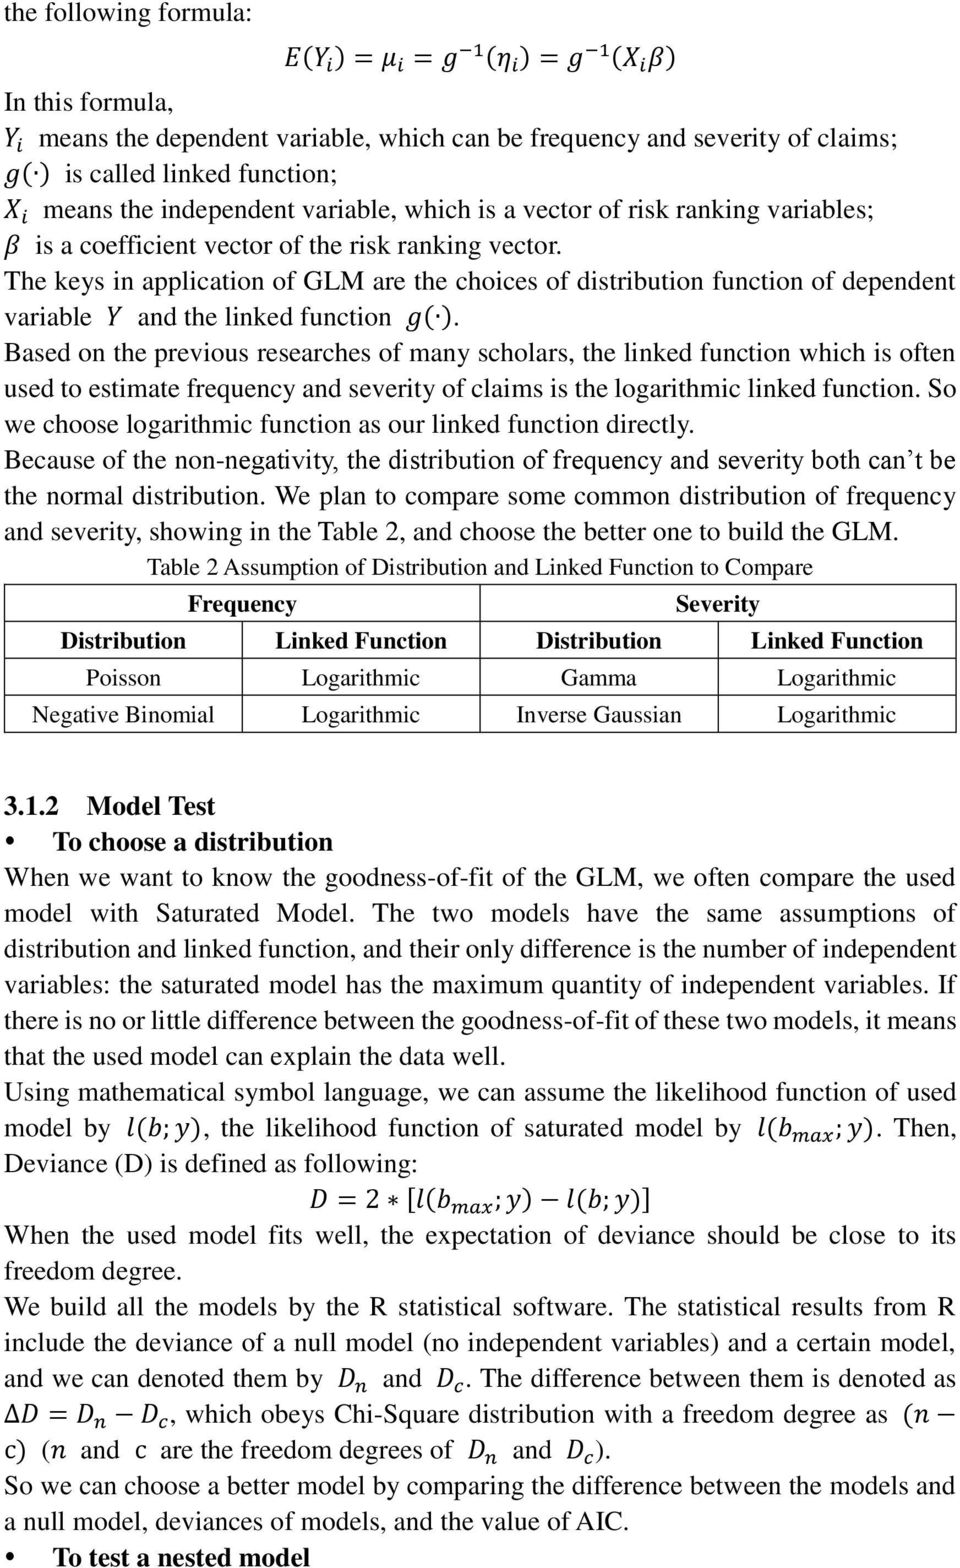 The keys in application of GLM are the choices of distribution function of dependent variable Y and the linked function g( ).